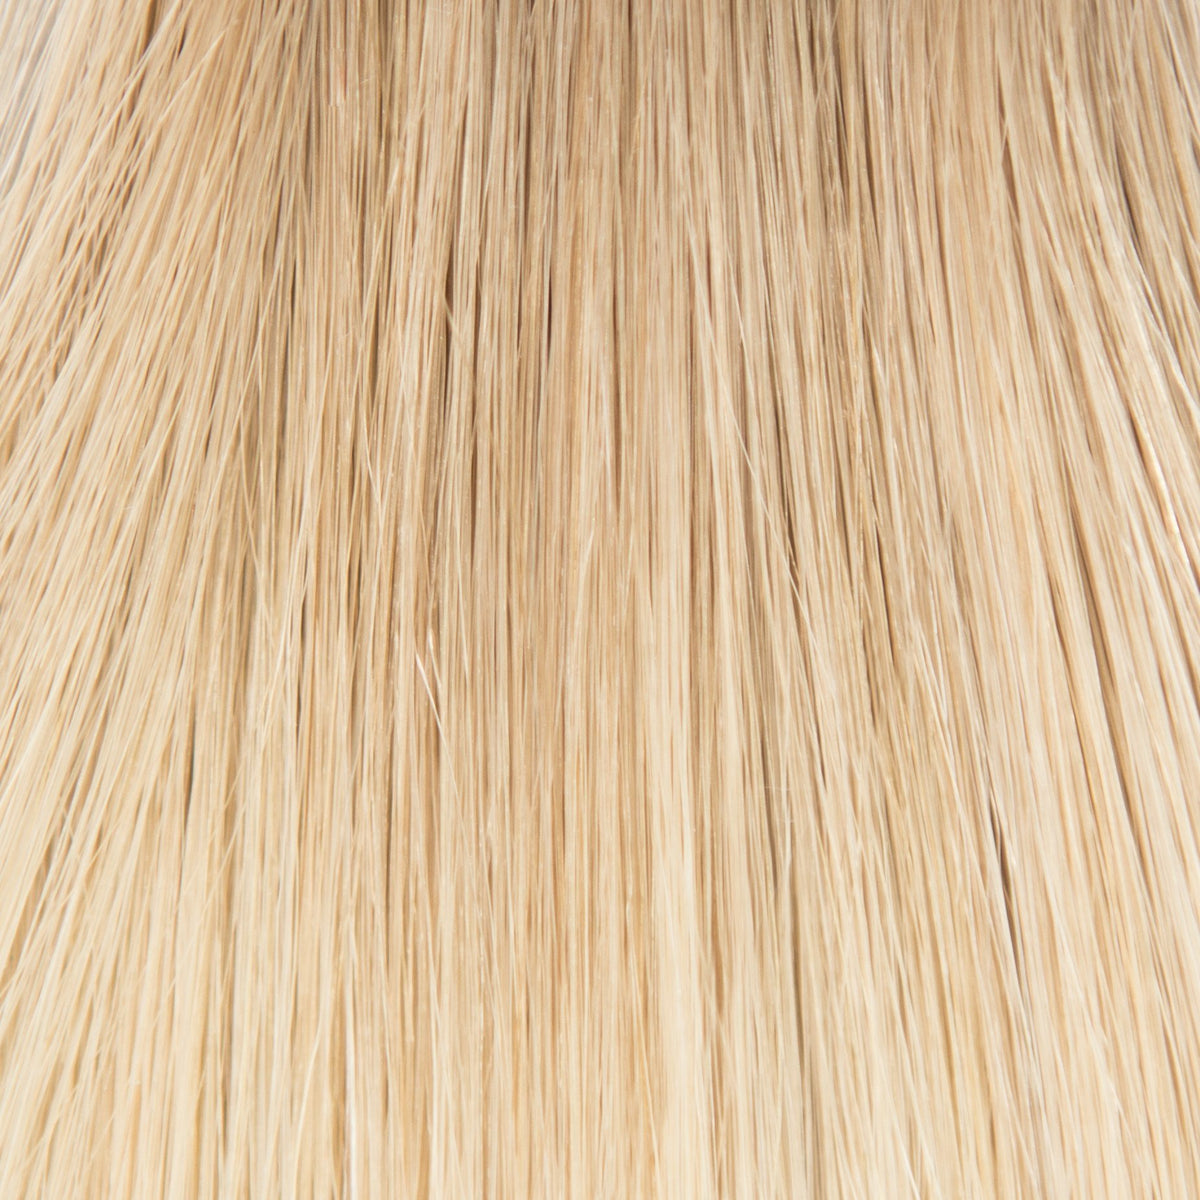 Machine_Sewn_Weft - Laced Hair Machine Sewn Weft Extensions Rooted #8/16/22